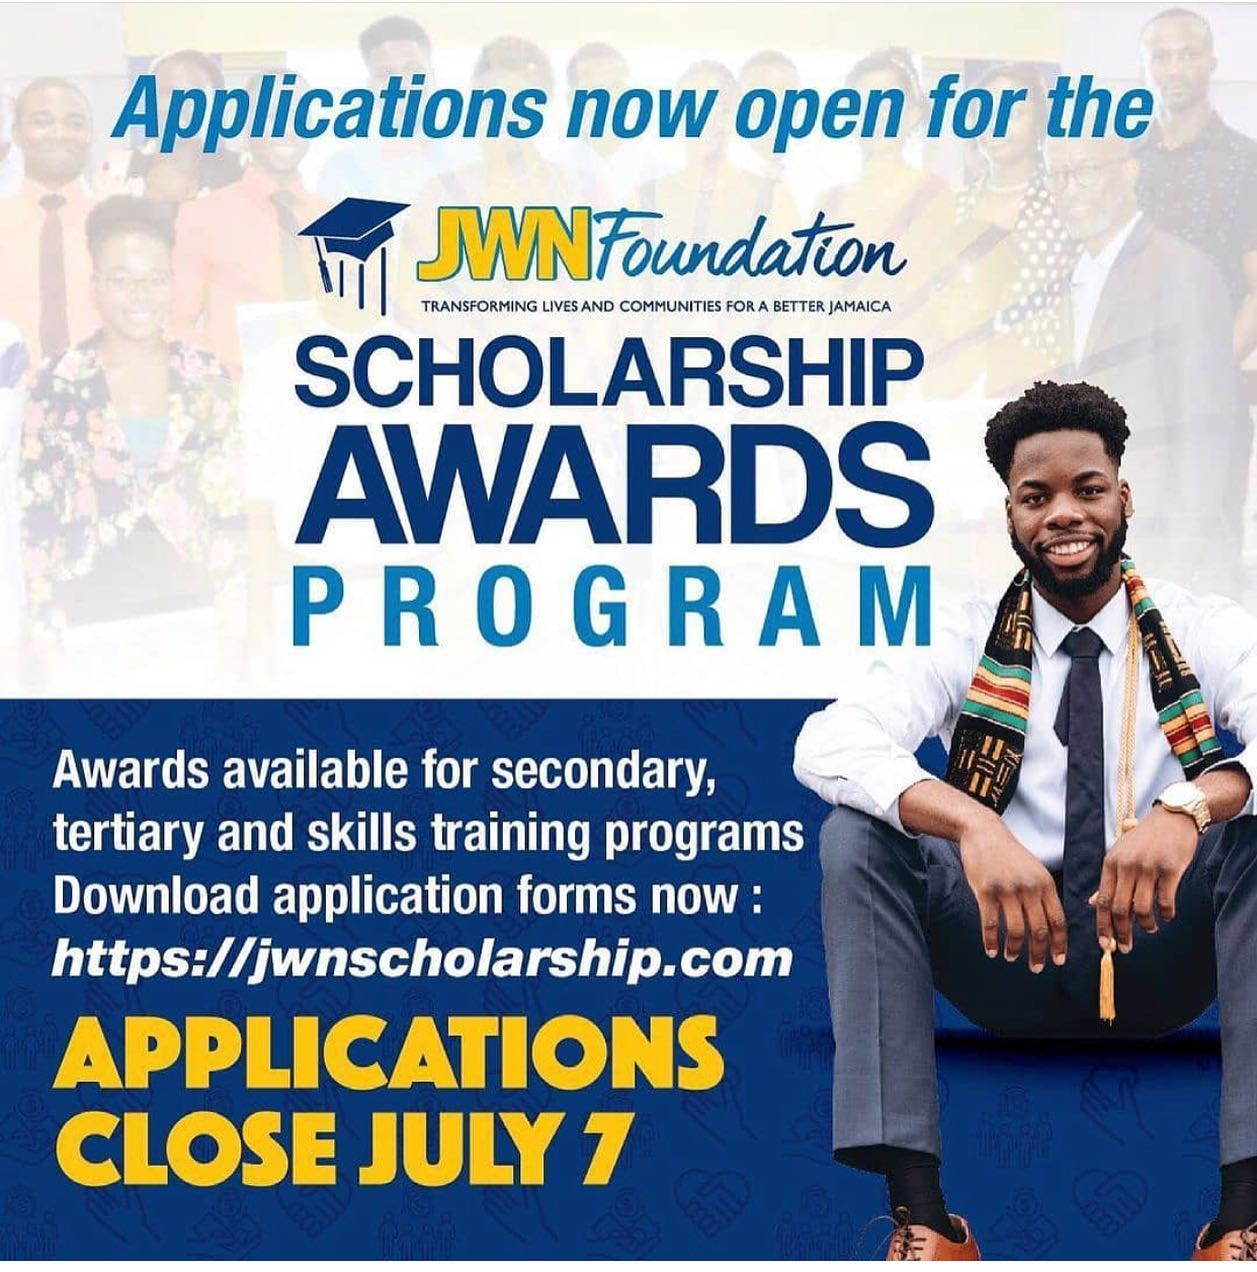 J Wray and Nephew (JWN) Foundation launches expanded 2021 scholarships with 250 Community Awards as part of its commitment to the education in Jamaica